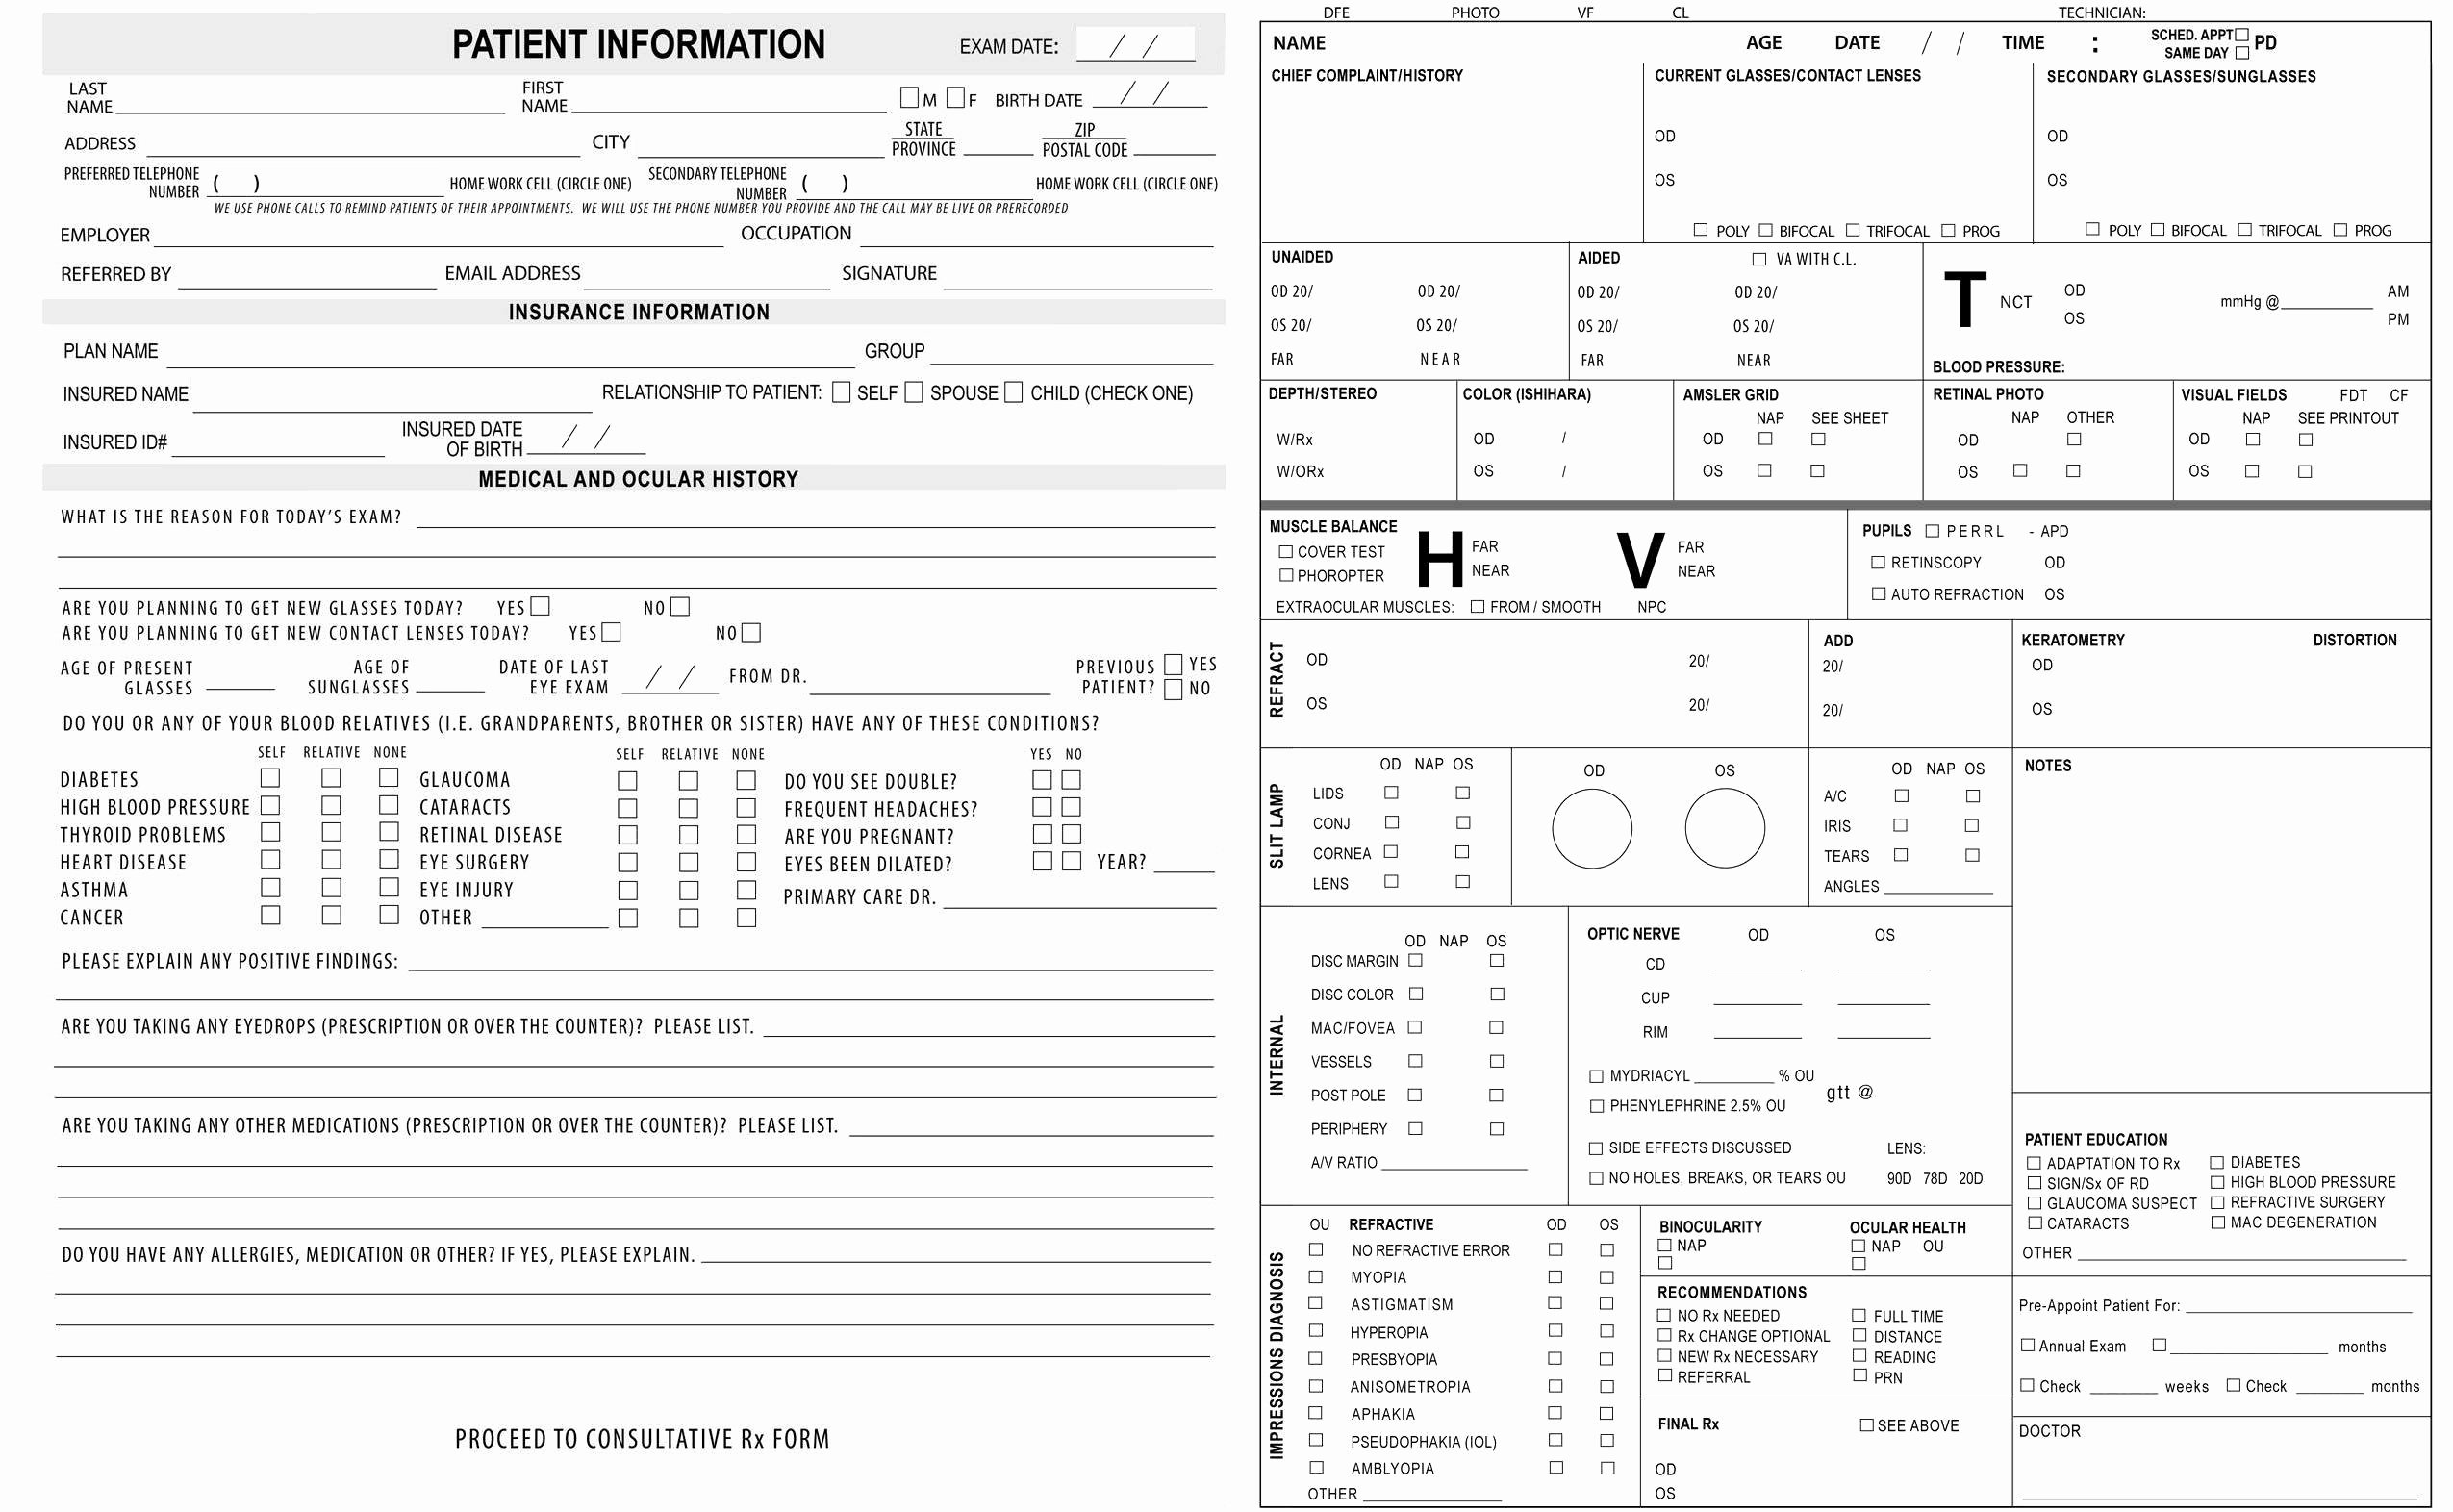 Cash Receipt Template Google Docs Awesome Simple Invoice format Doc Free Value Added Tavat Template